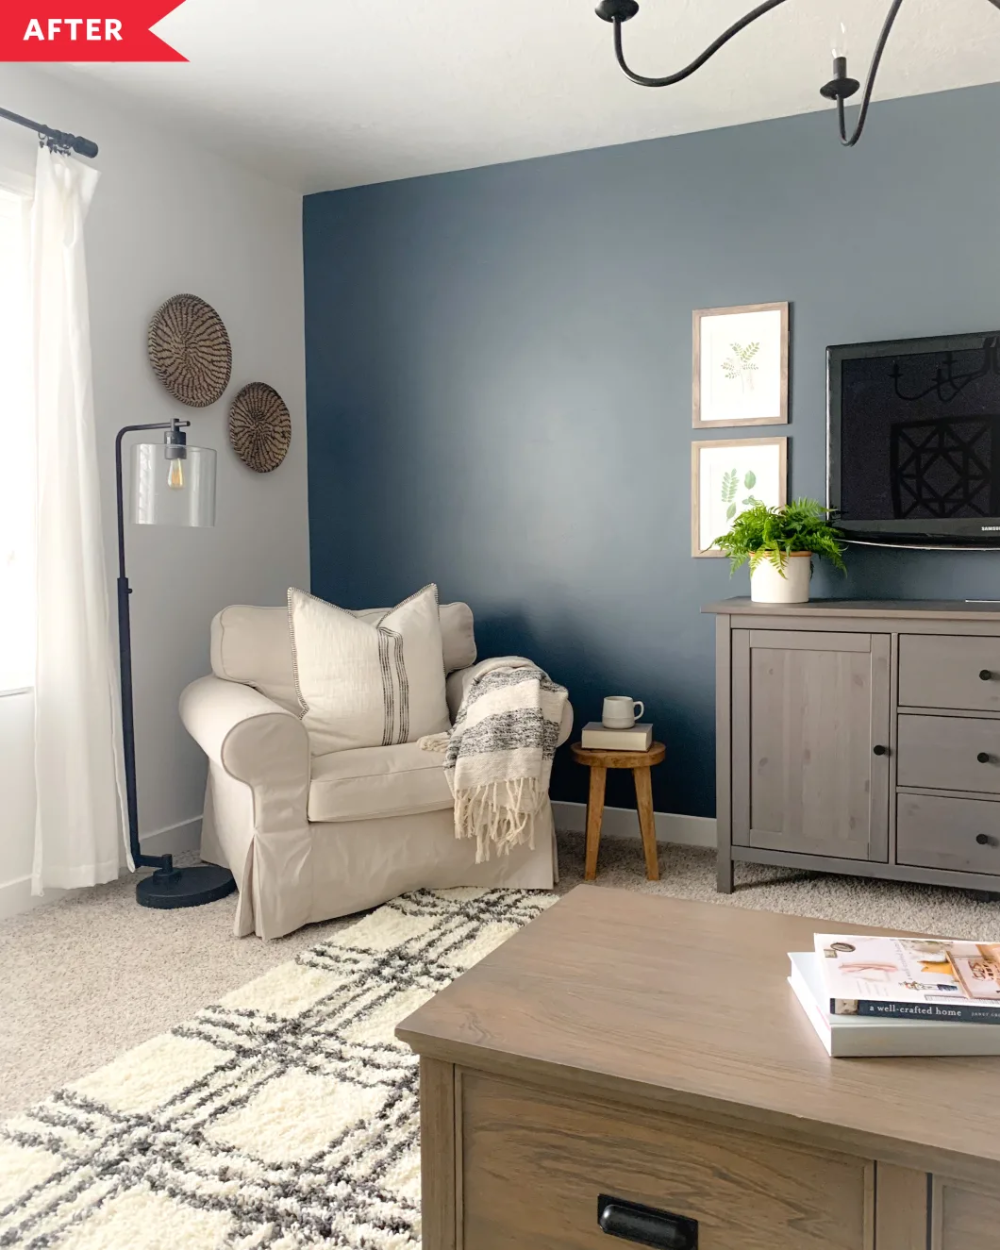 Photo of Before and After: This $350 Living Room Refresh Shows the Power of Small Tweaks